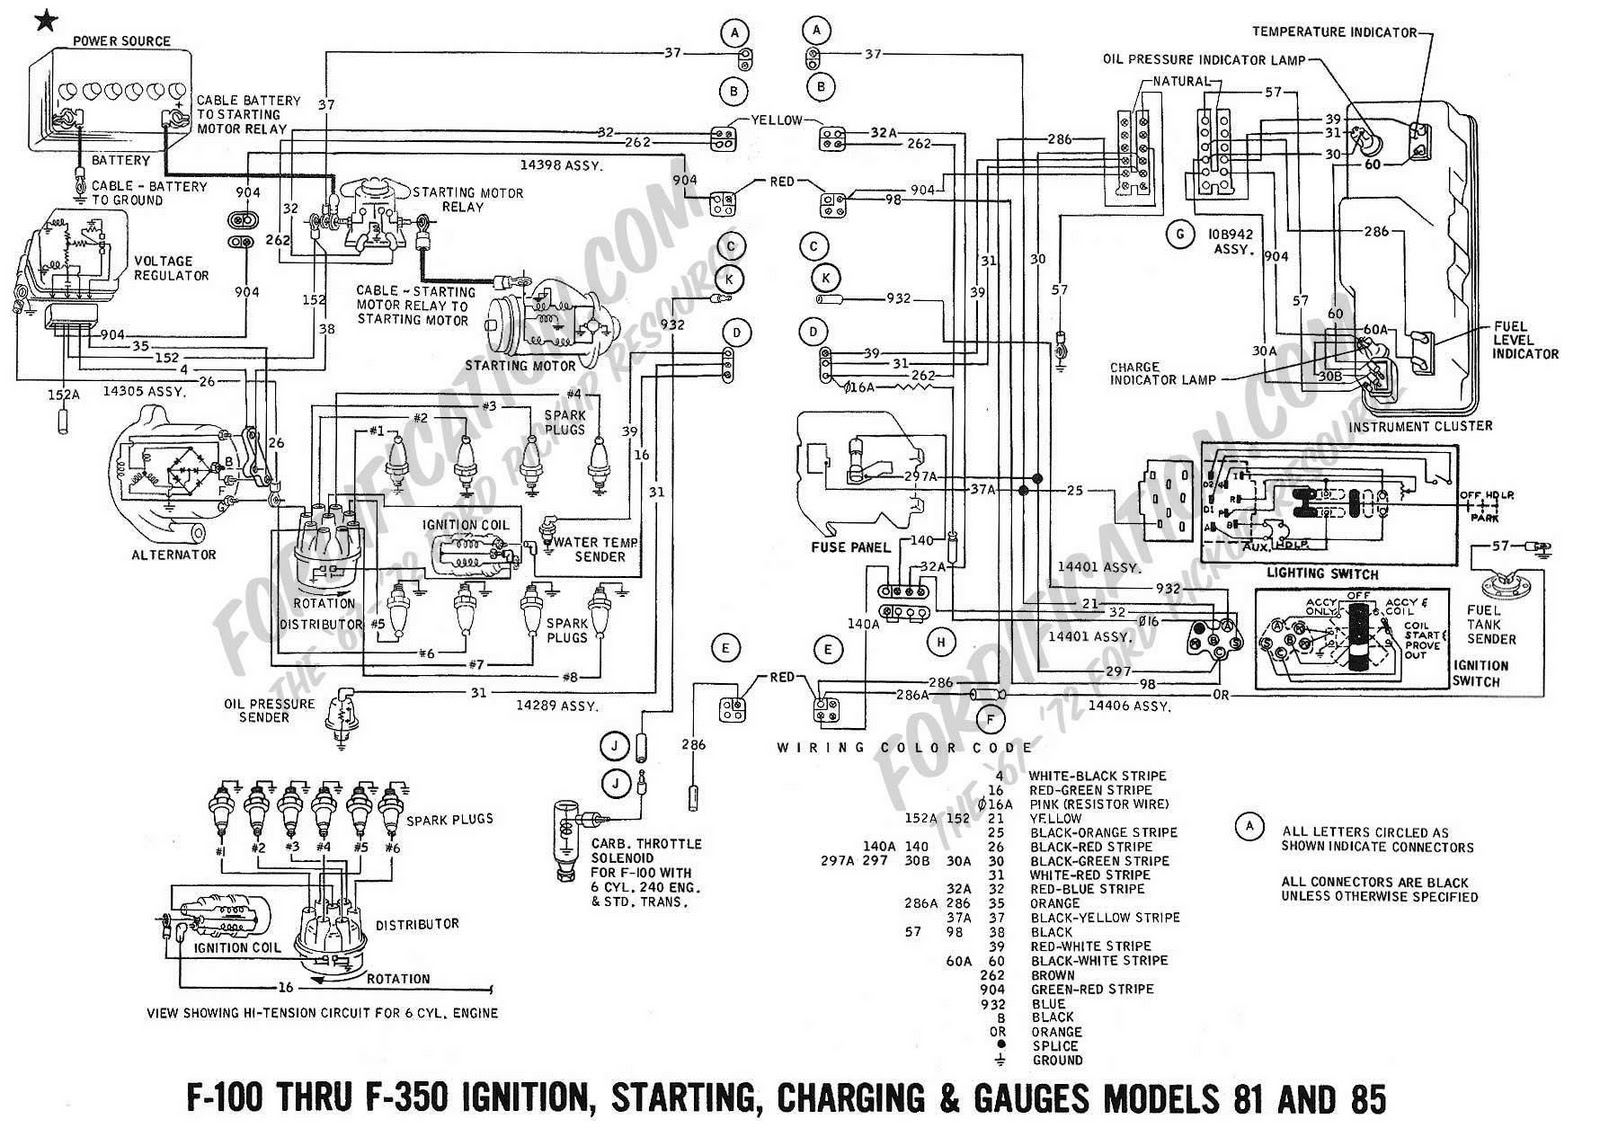 Ford F750 Wiring Diagram Schematics 2016 E450 Free Download Schematic 1967 Schema Img Rh 9 5 2 Derleib De 2015 Diagrams